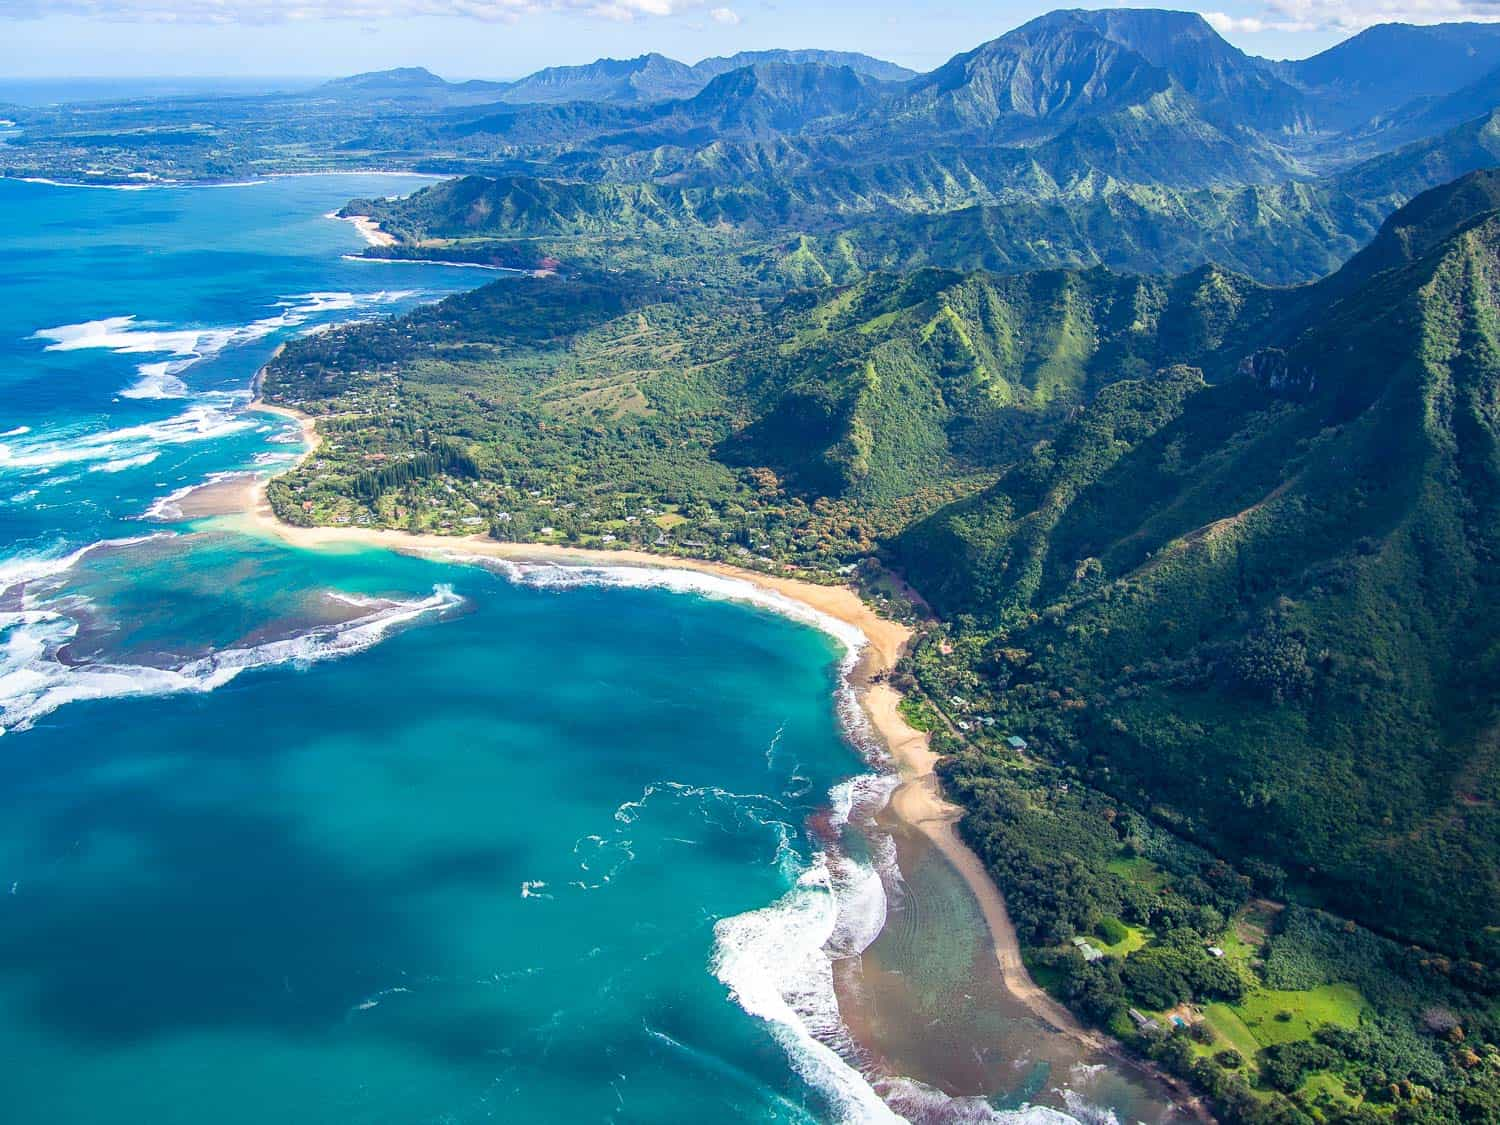 Kauai's North Shore viewed from a helicopter